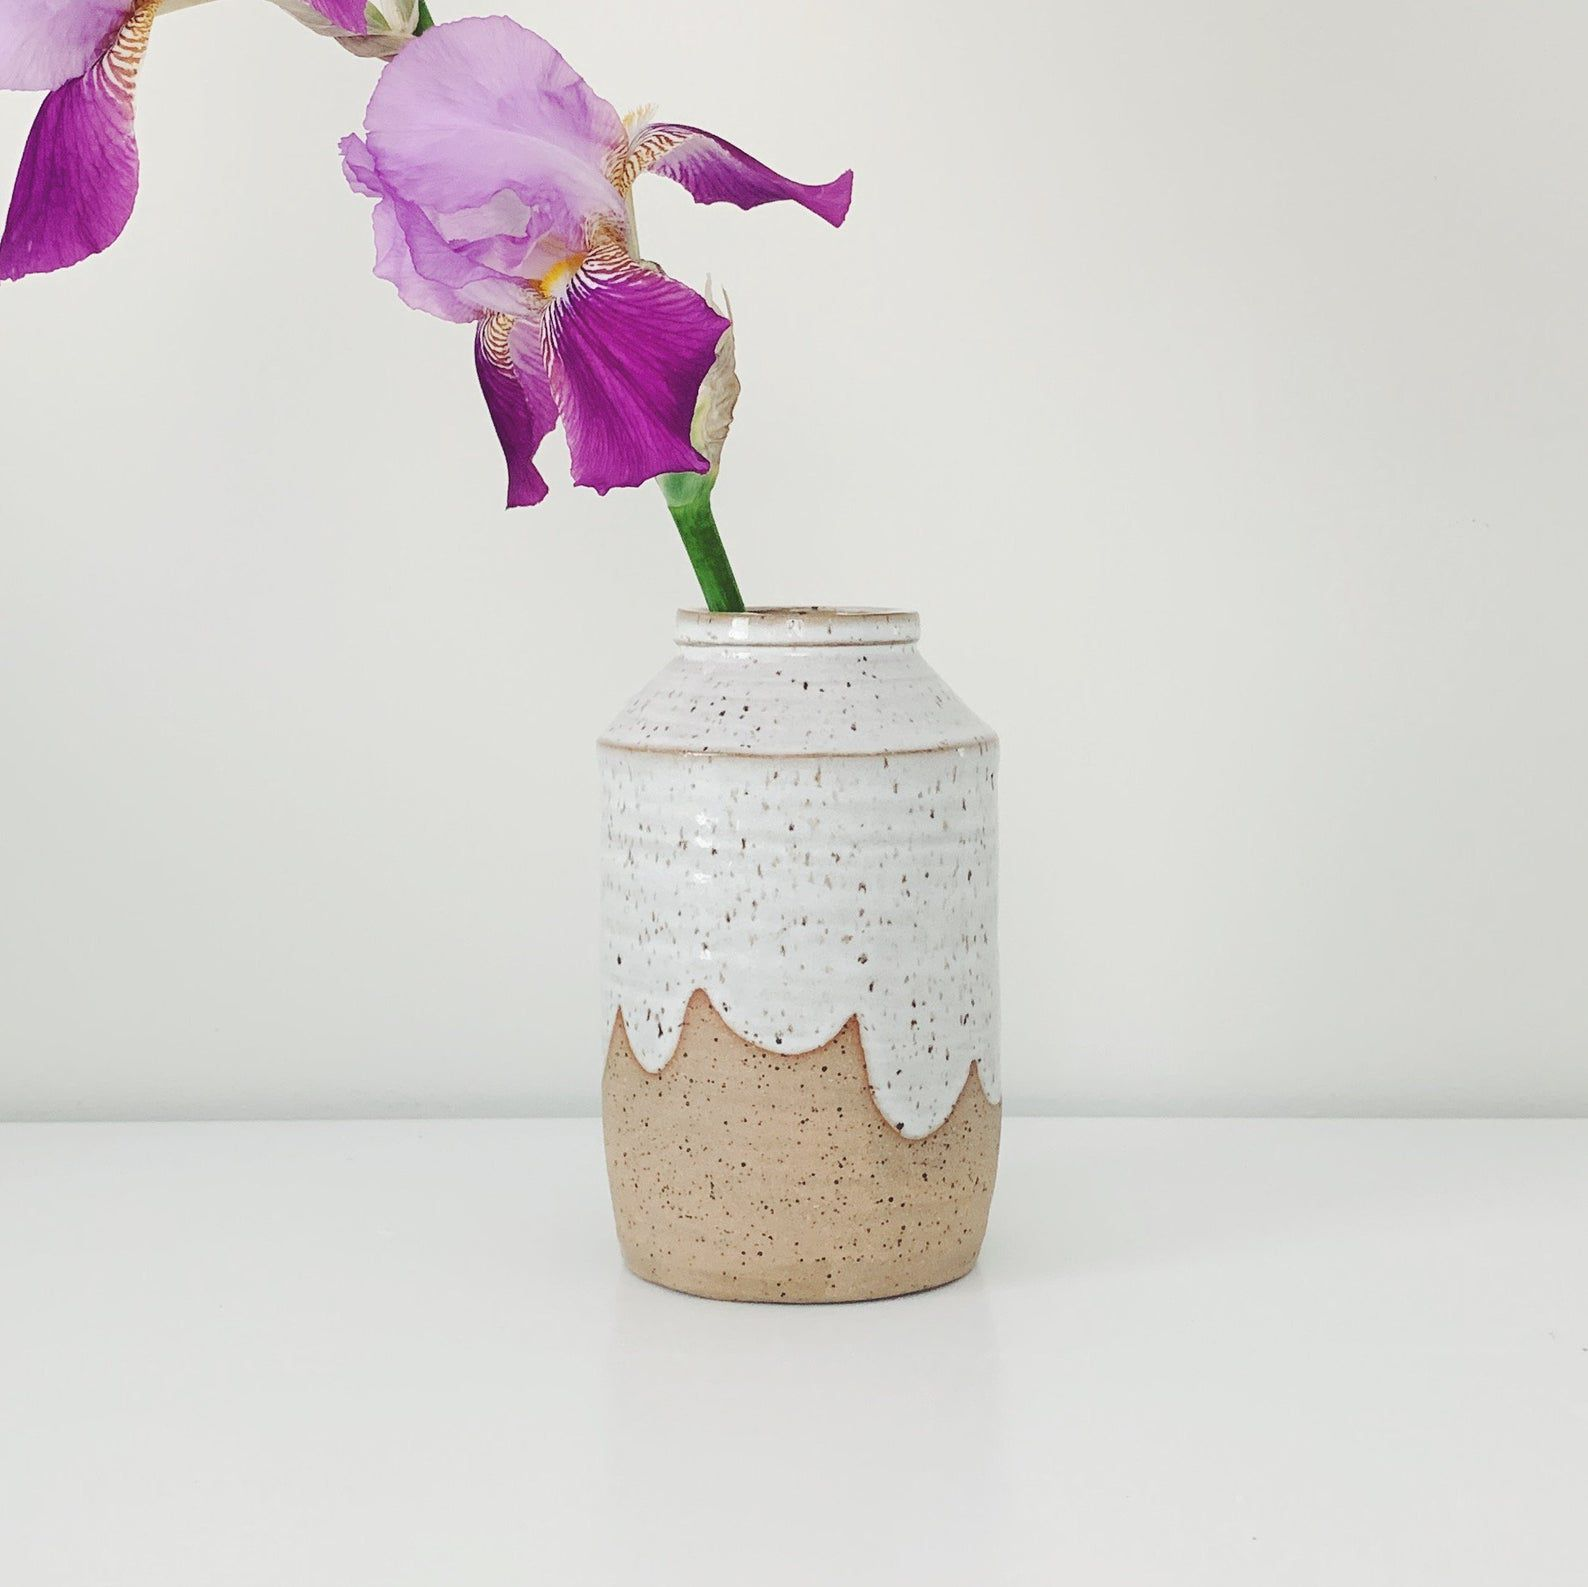 White Cloud Ceramic Vase sports a purple orchid